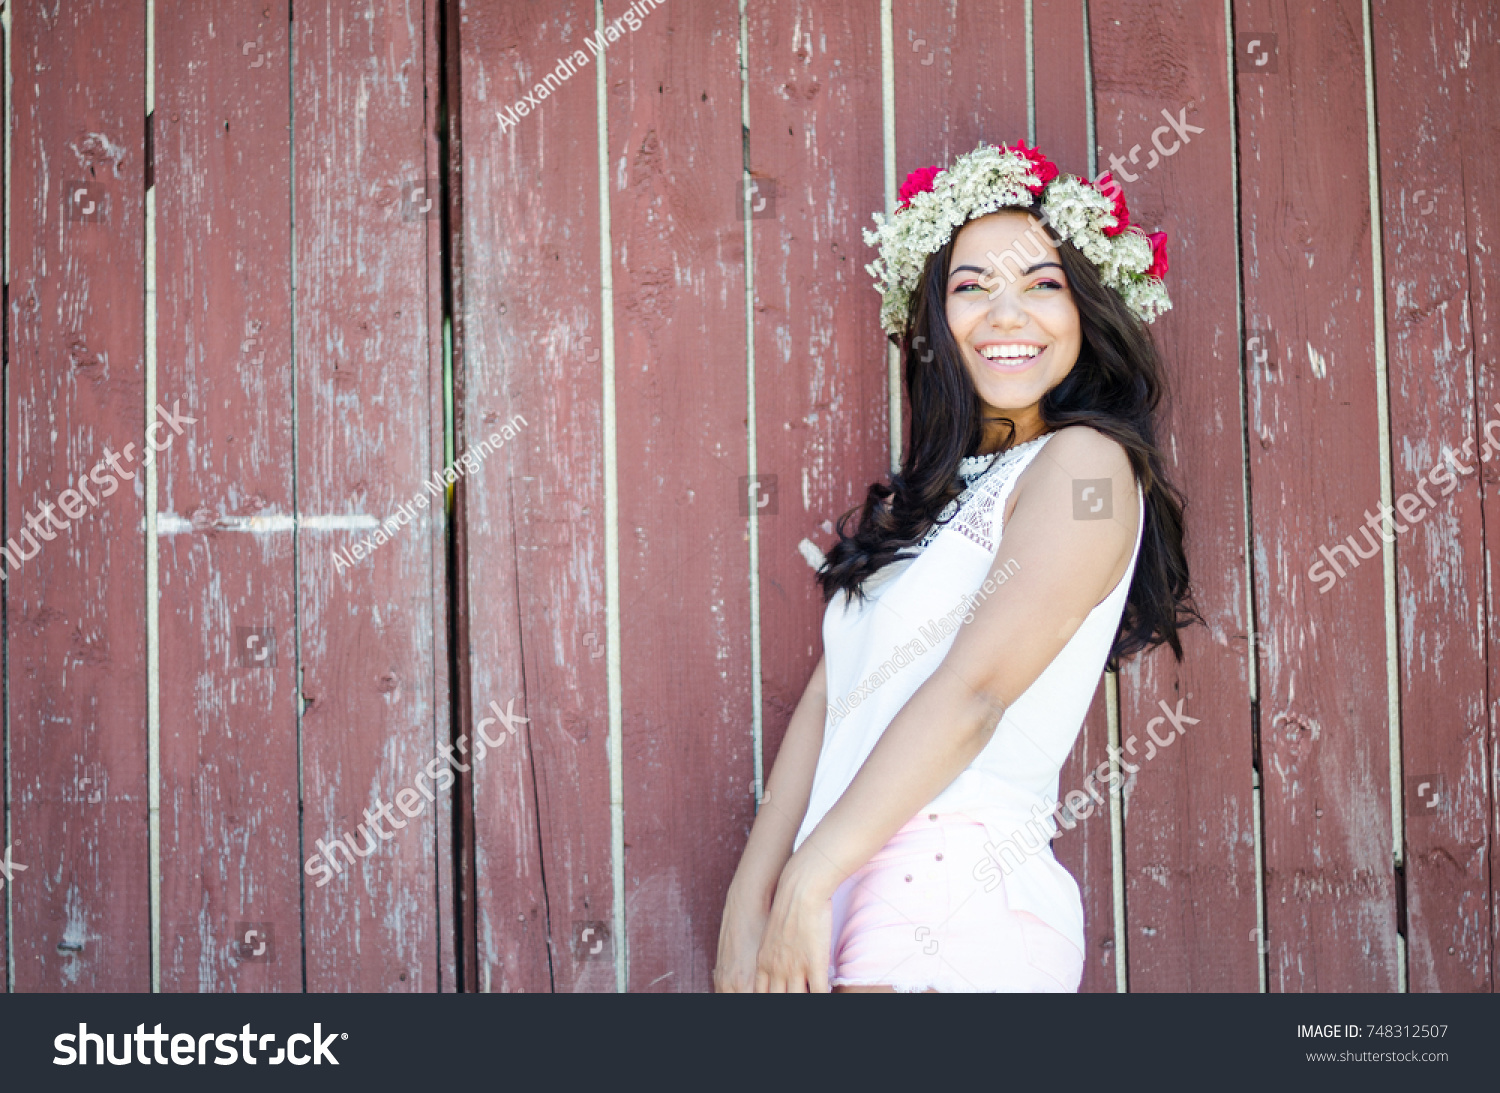 53c6672b3a Pretty Girl Wearing Flower Crown Stock Photo (Edit Now) 748312507 ...